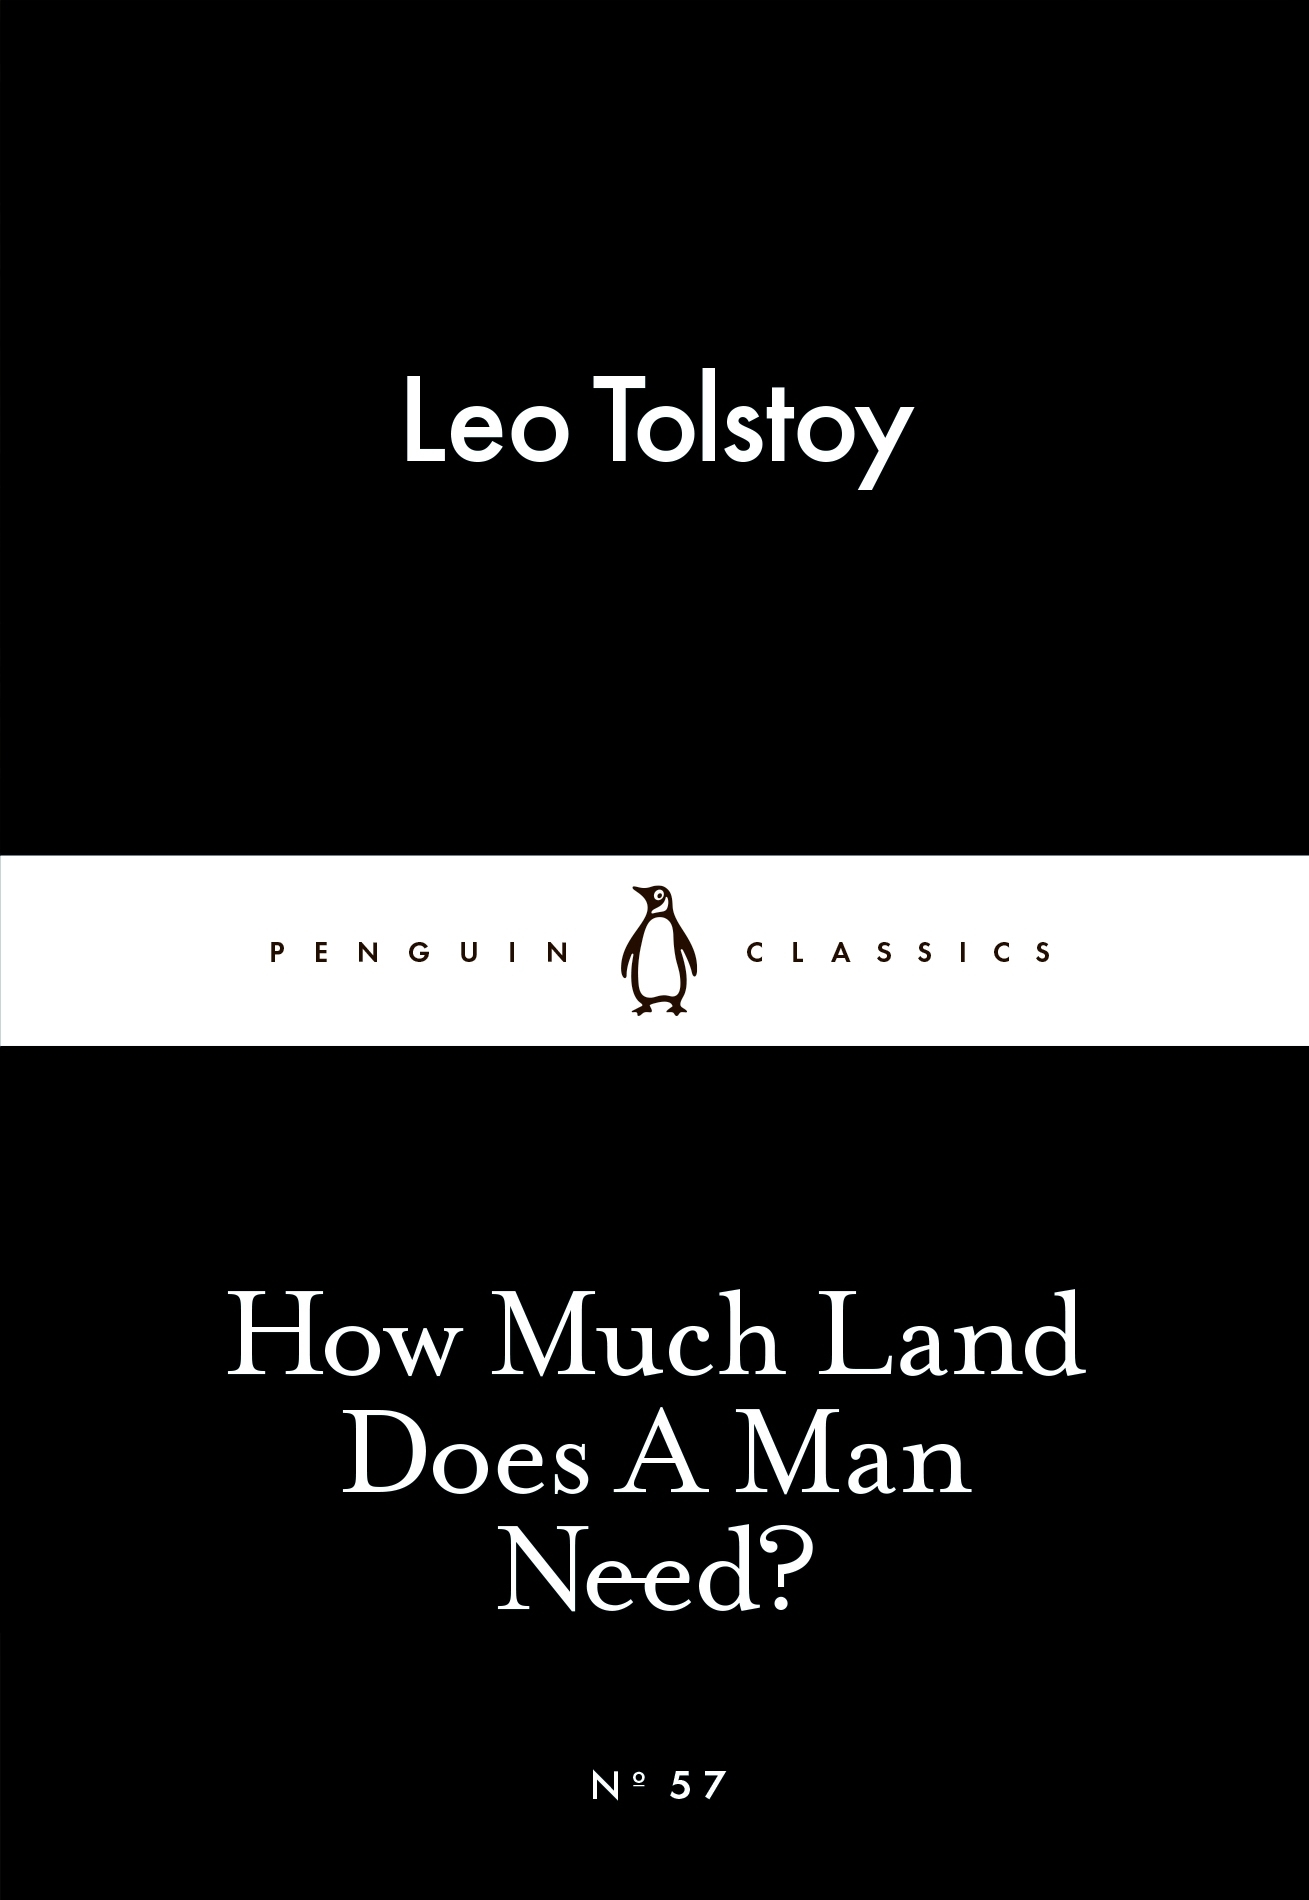 the poison of greed in how much land does a man need by leo tolstoy How much land does a man need leo tolstoy tells the story of a greedy man named, pahom, who was obsessed by amassing more and more land one day he learned of a wonderful and unusual opportunity to.